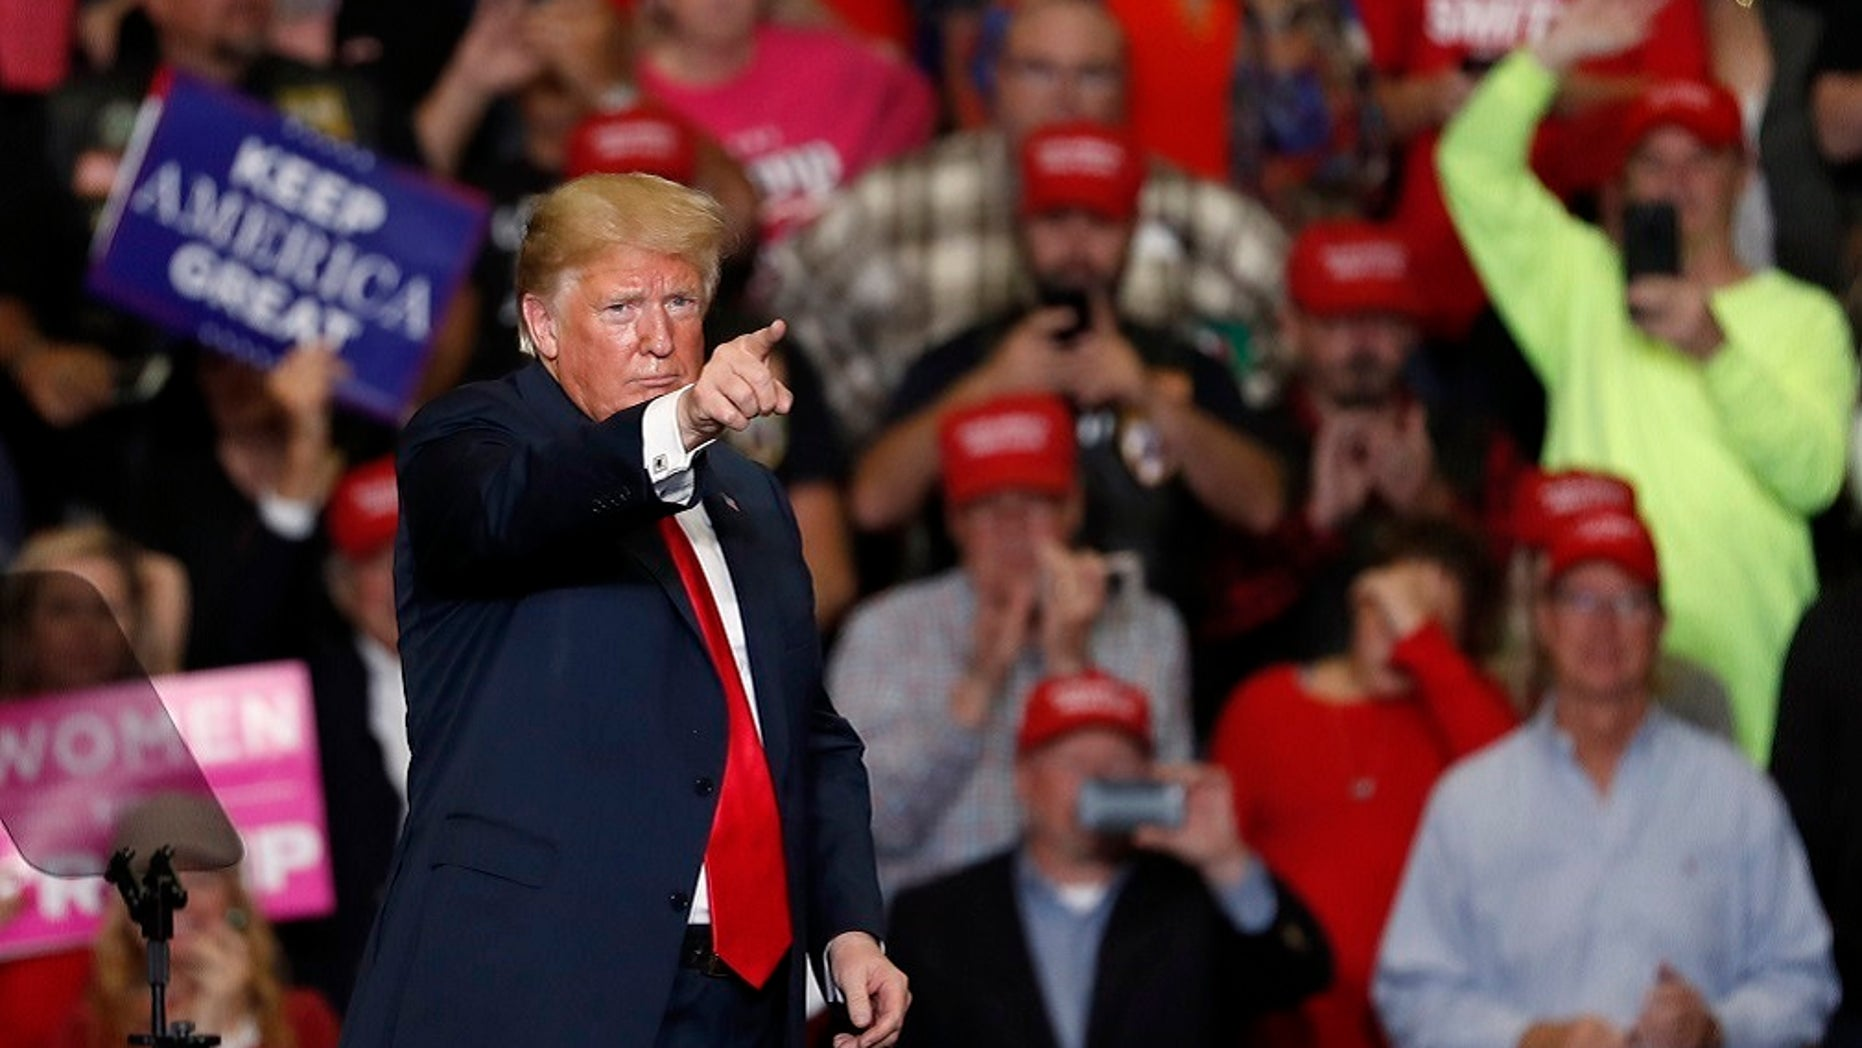 President Donald Trump points to the crowd as he leaves the stage at the end of a campaign rally Monday.